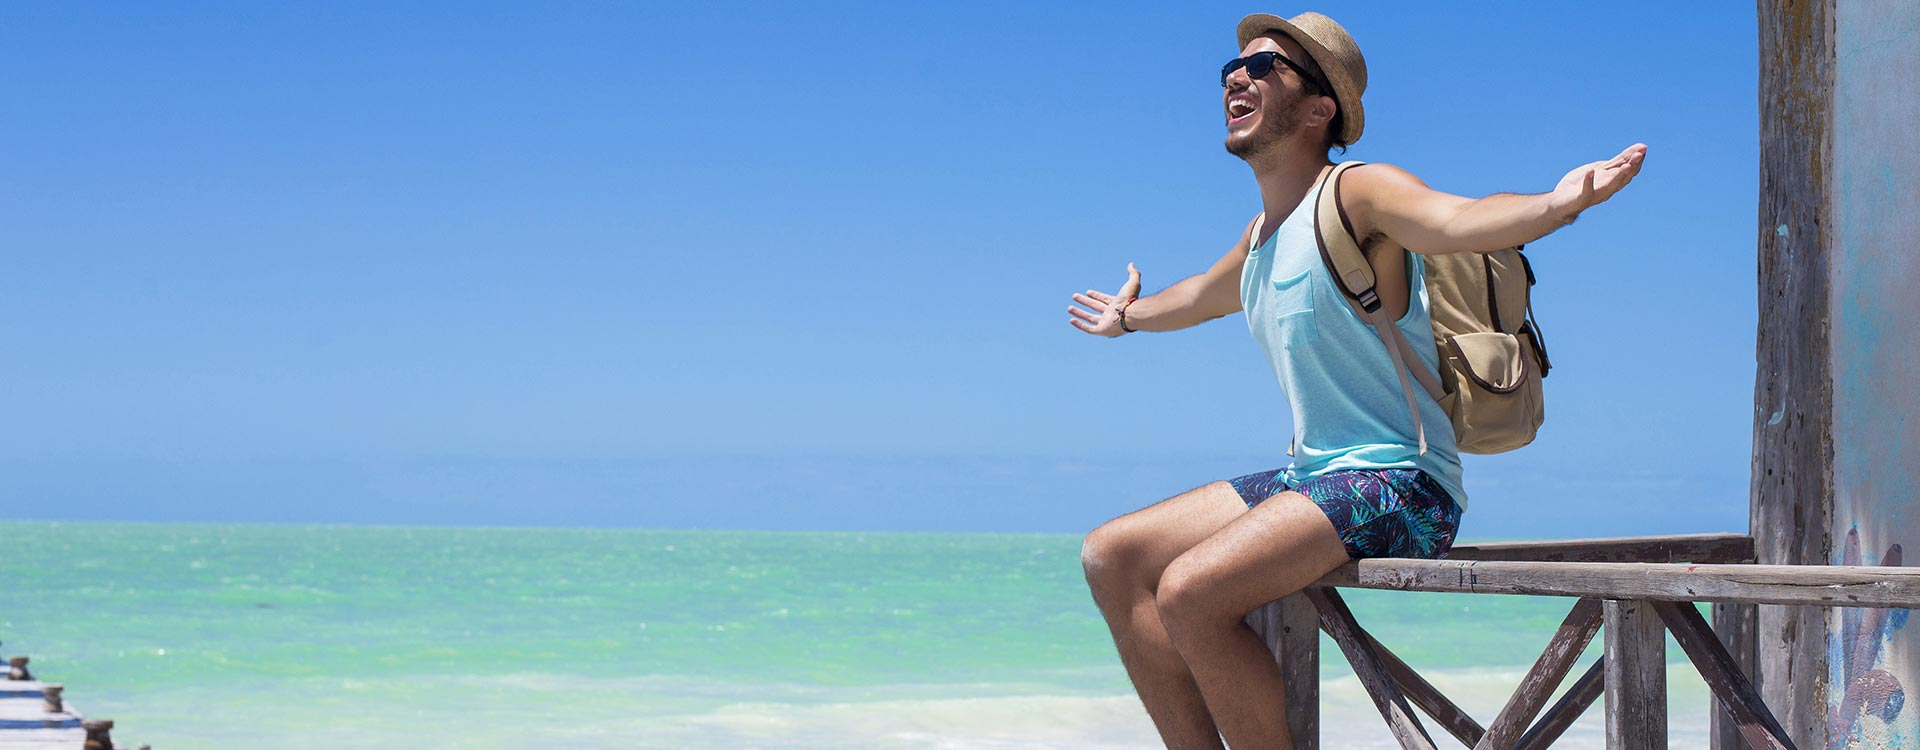 Want to Travel Alone? 10 Tips for Traveling Solo